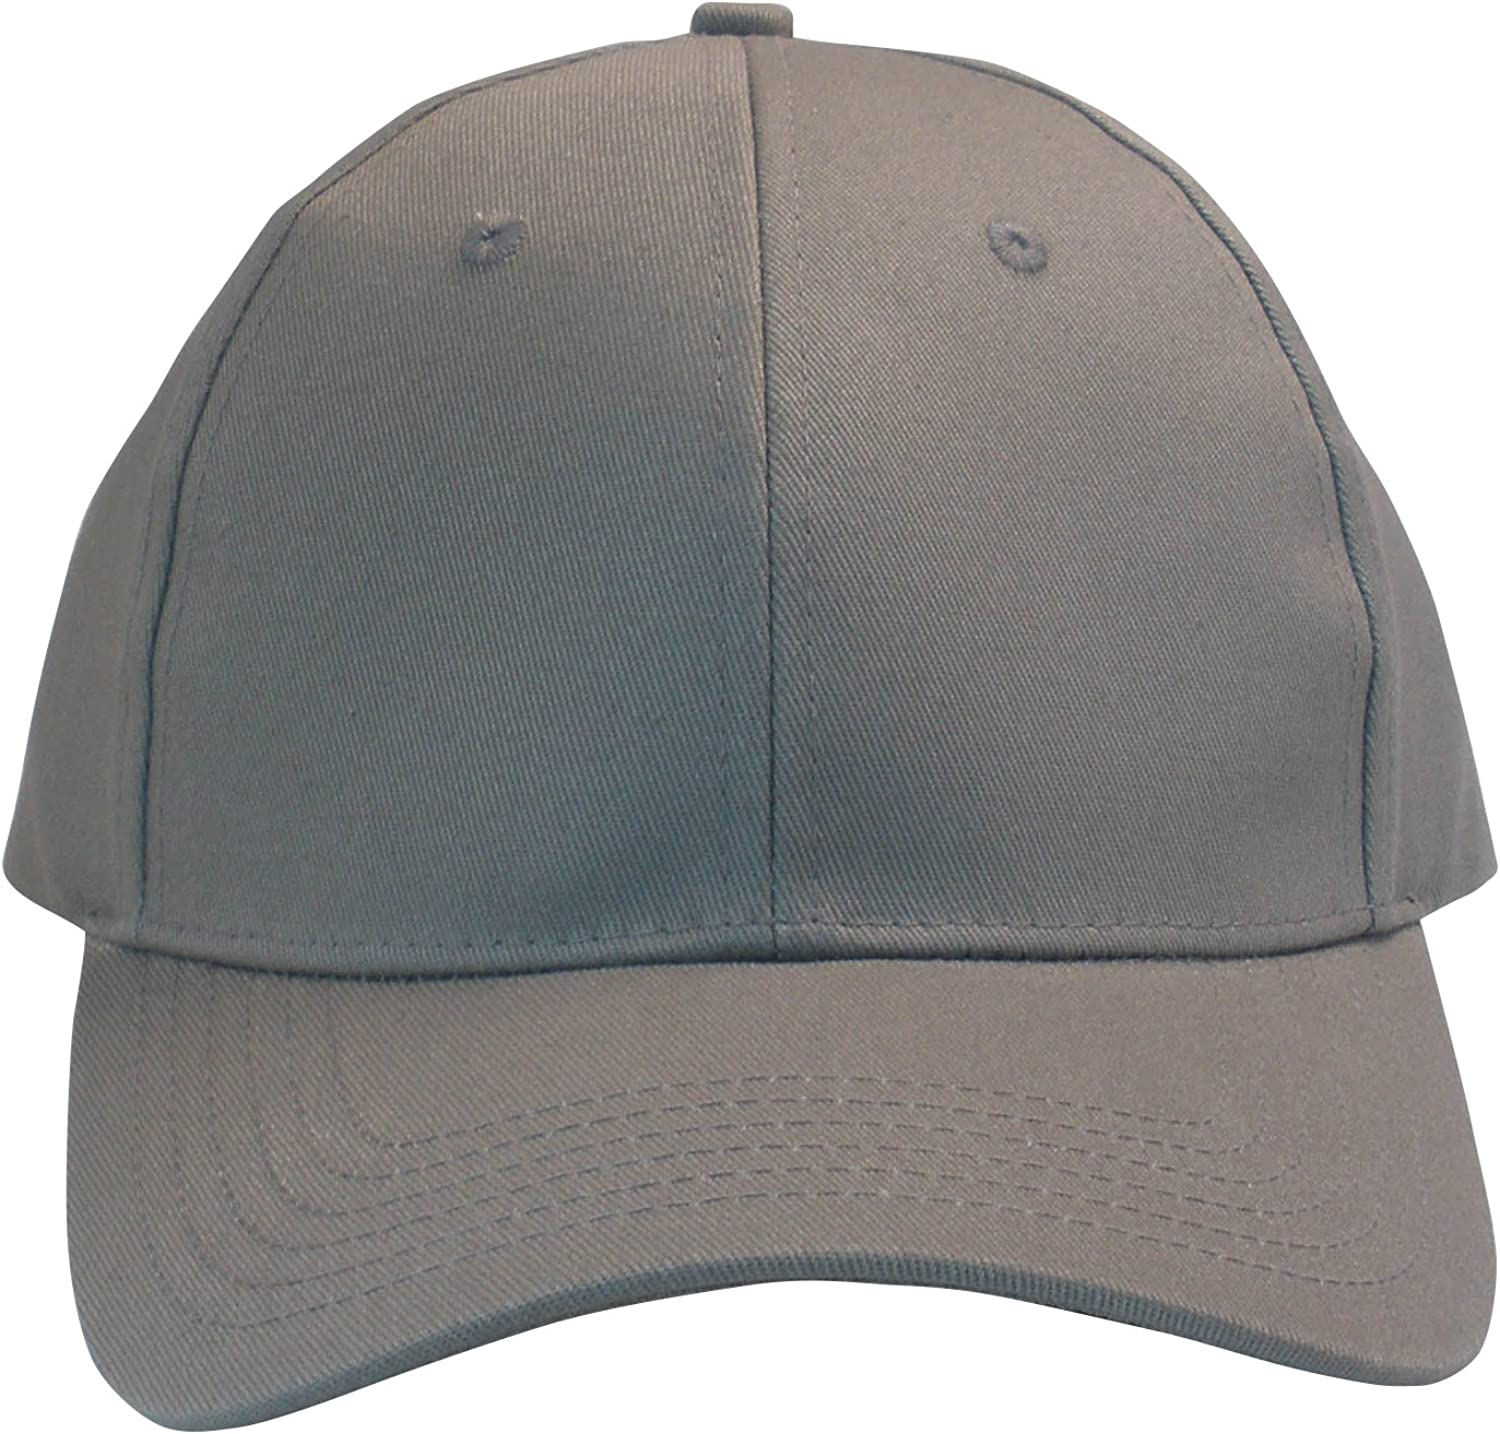 Always Eleven Cotton Baseball Hat with Satin Lining